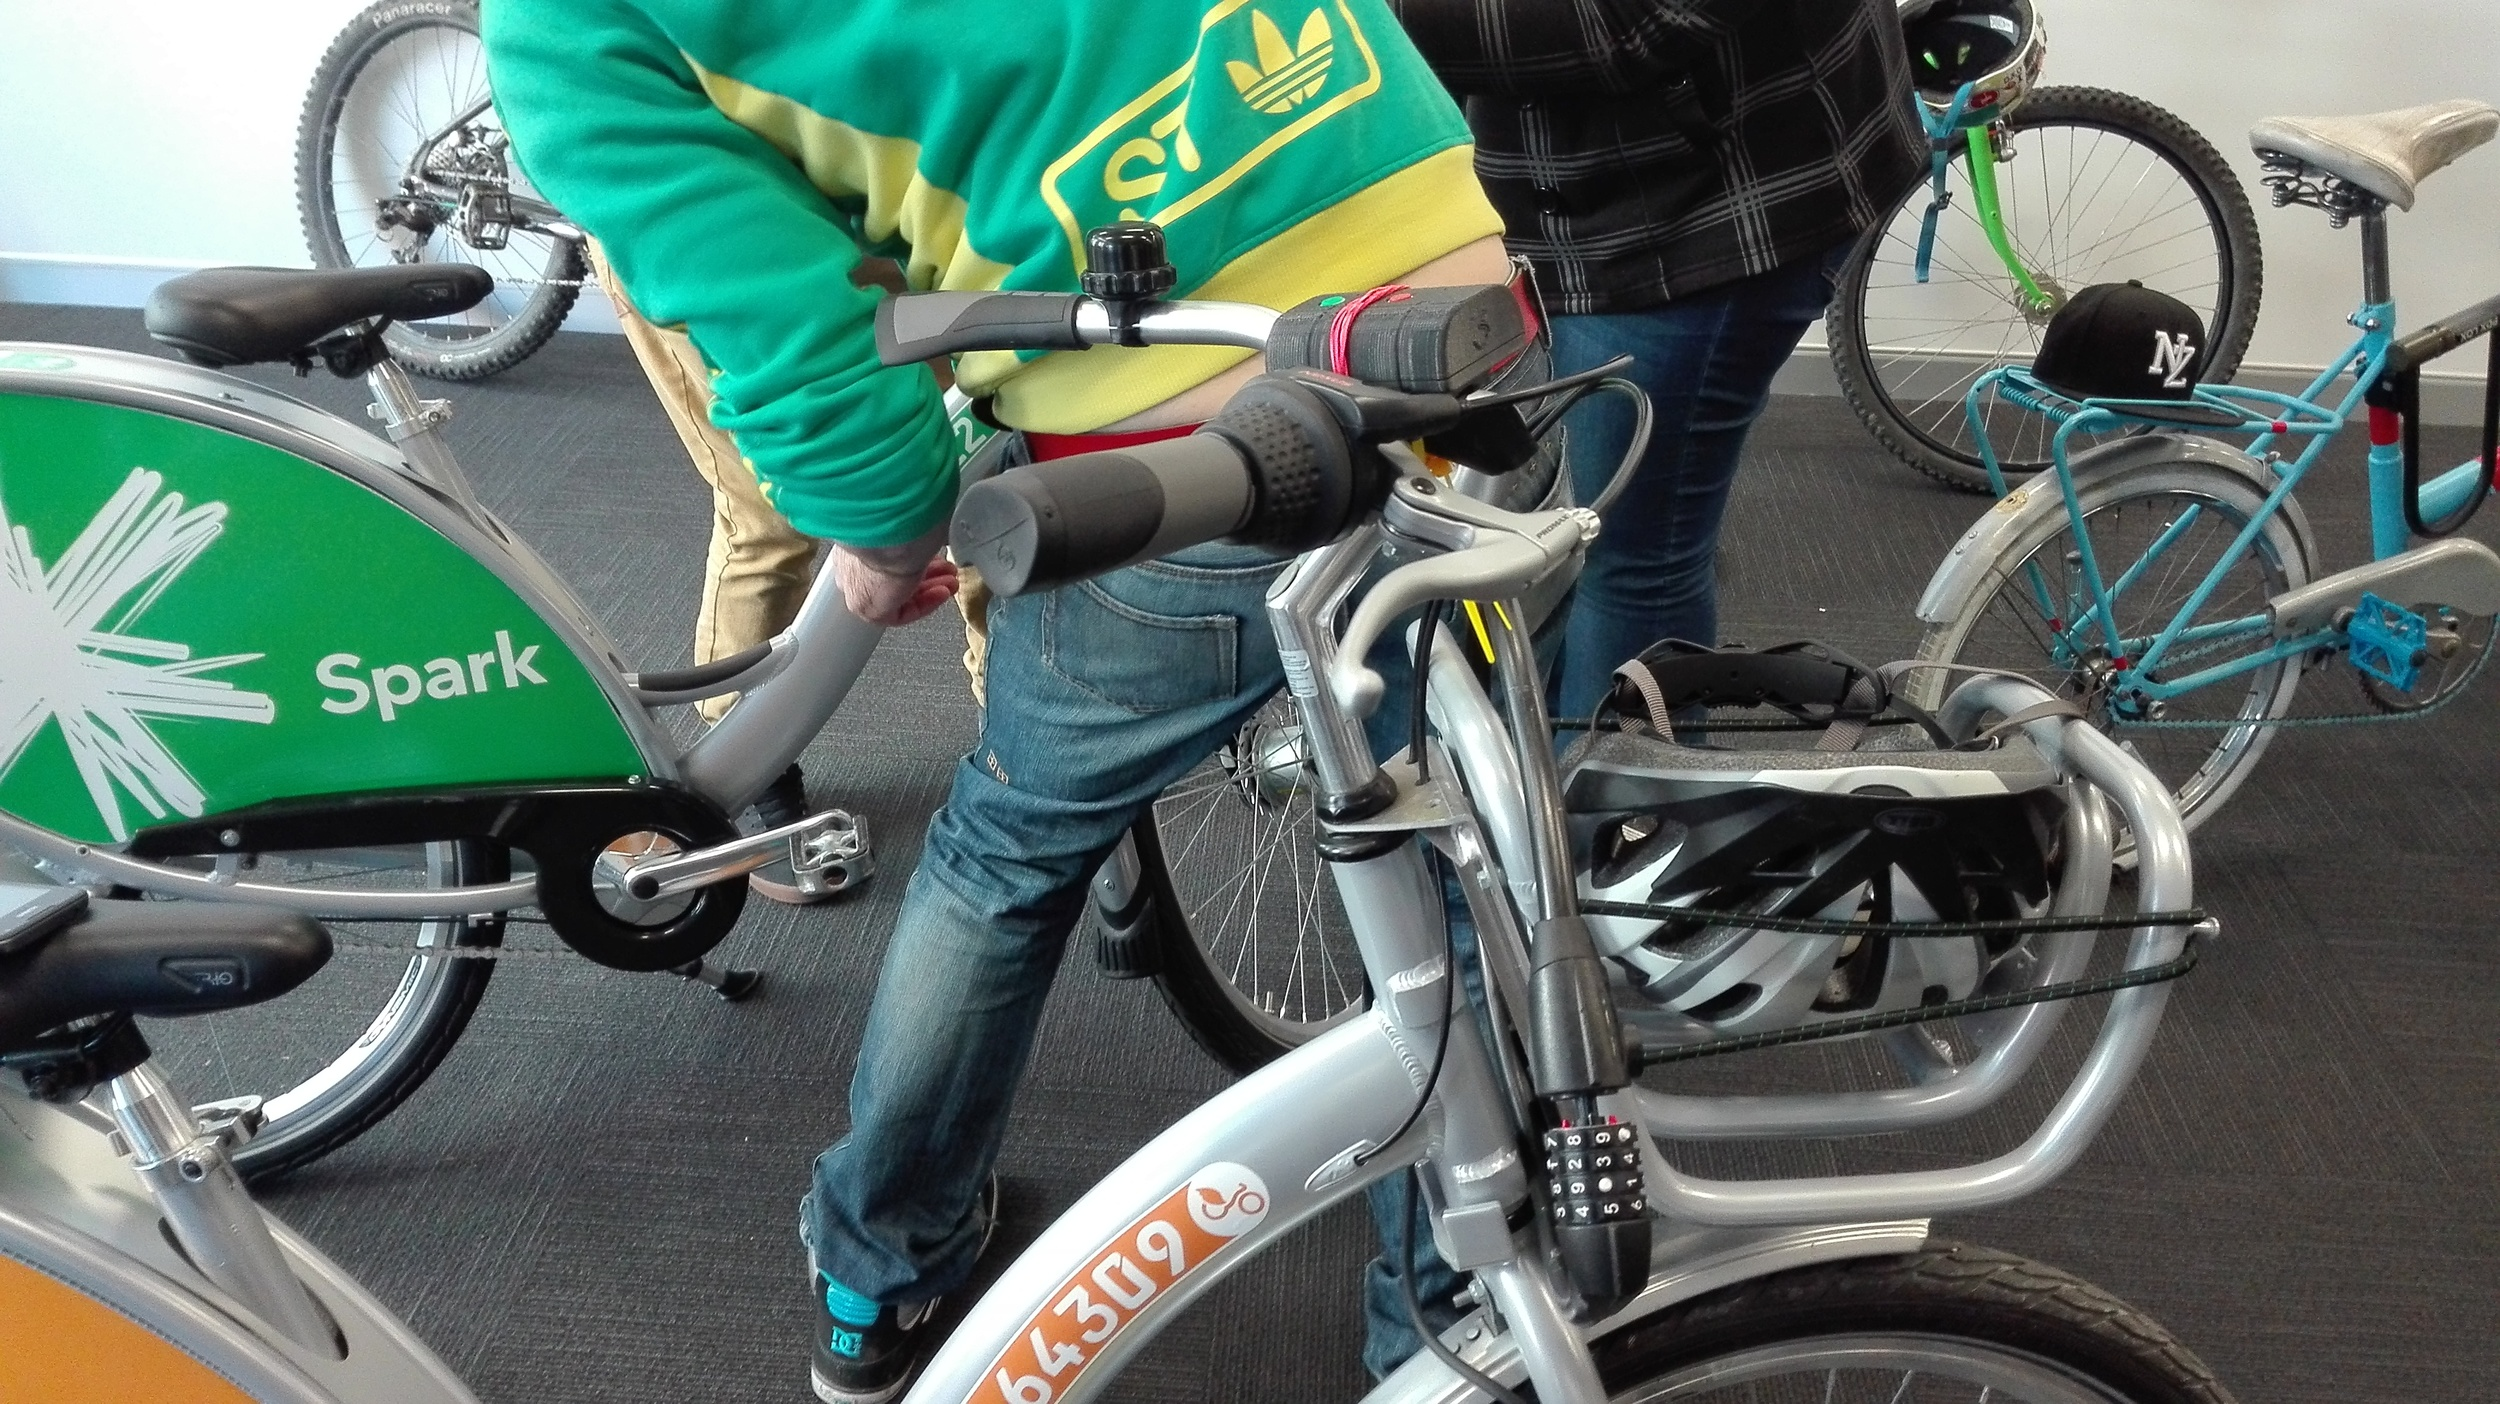 Field tests carried out with a range of cyclists including Christchurch's bike share – Spark Bike